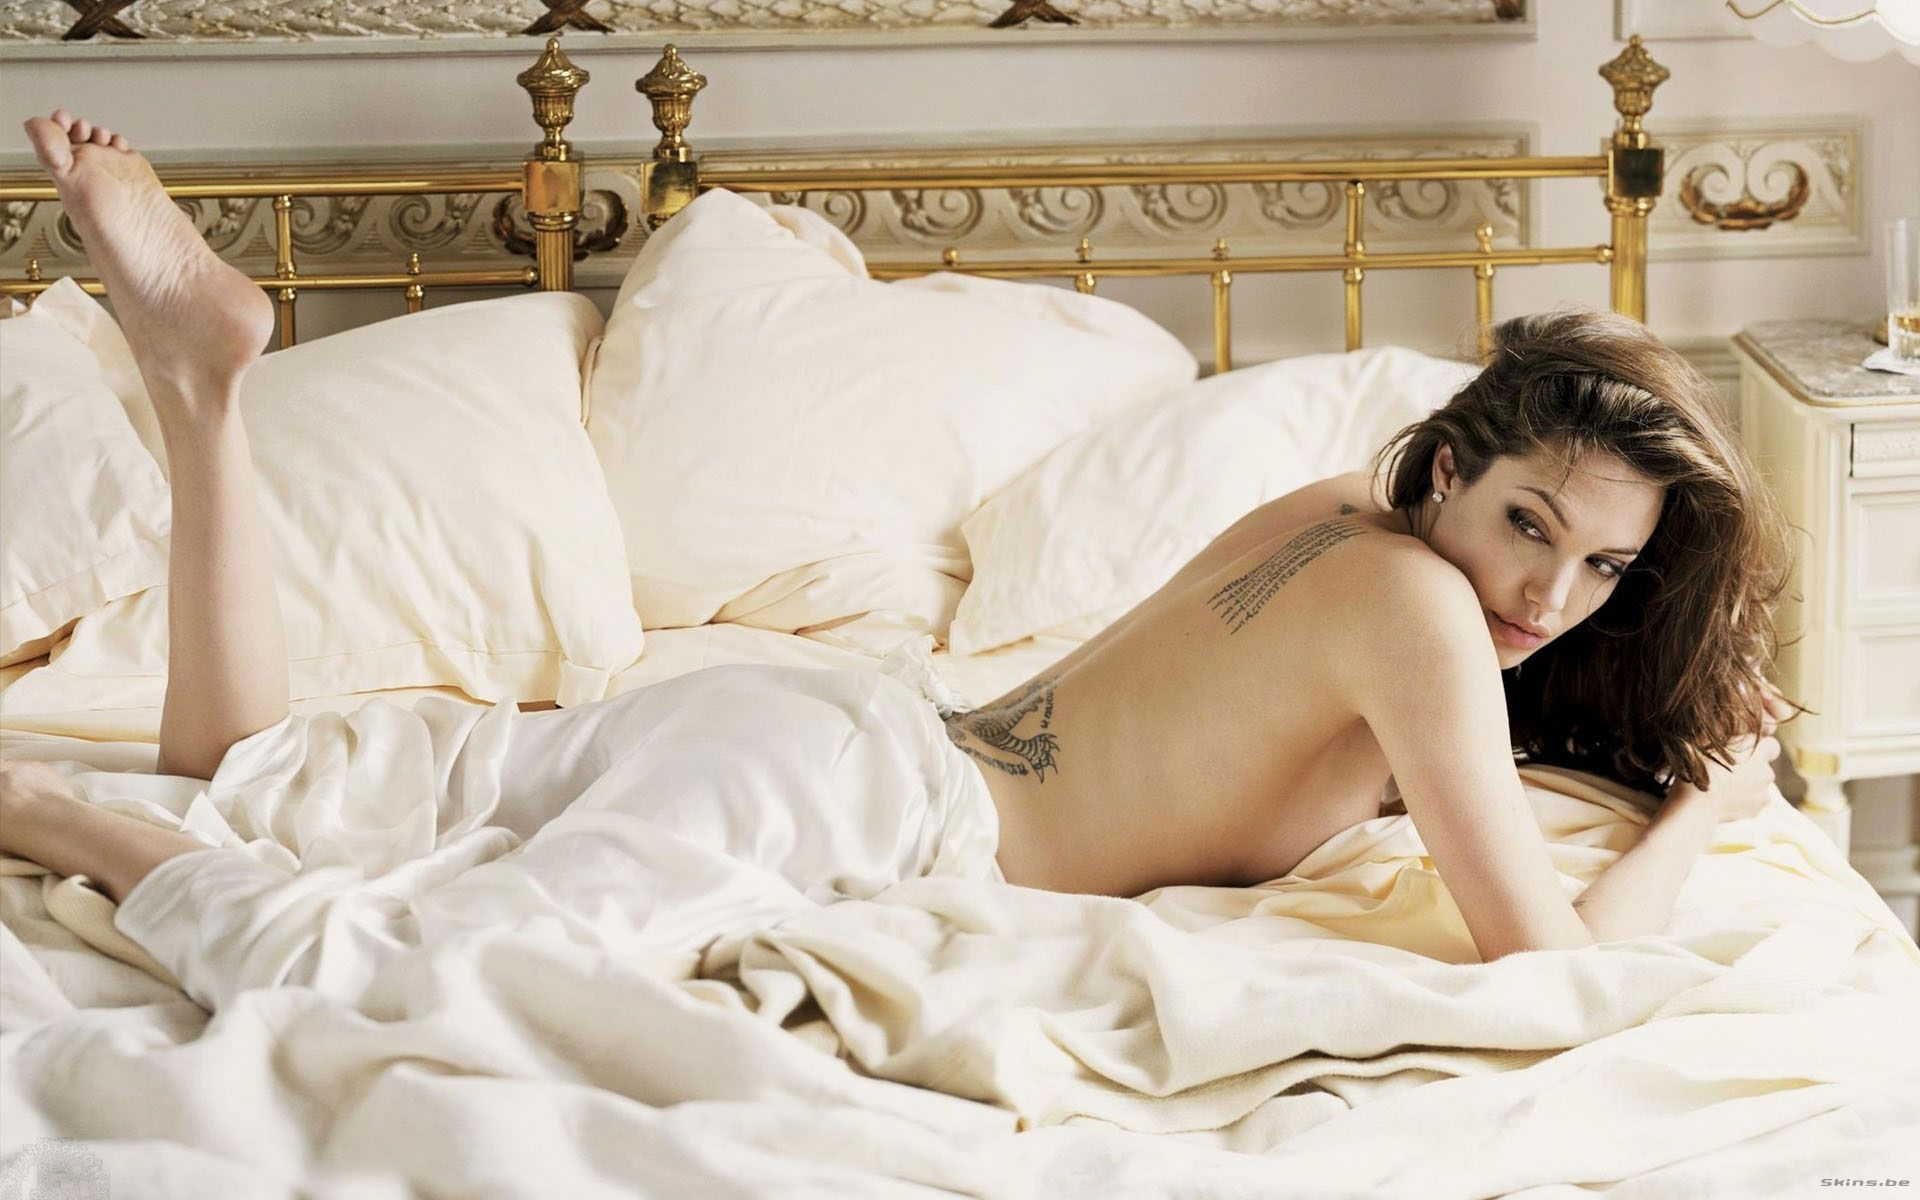 Sexy Angelina Jolie lying naked on bed showing back with tattoos she cover  her ass with sheet #hot #celebrities #celebrity #sexy #women #movies  #actresses